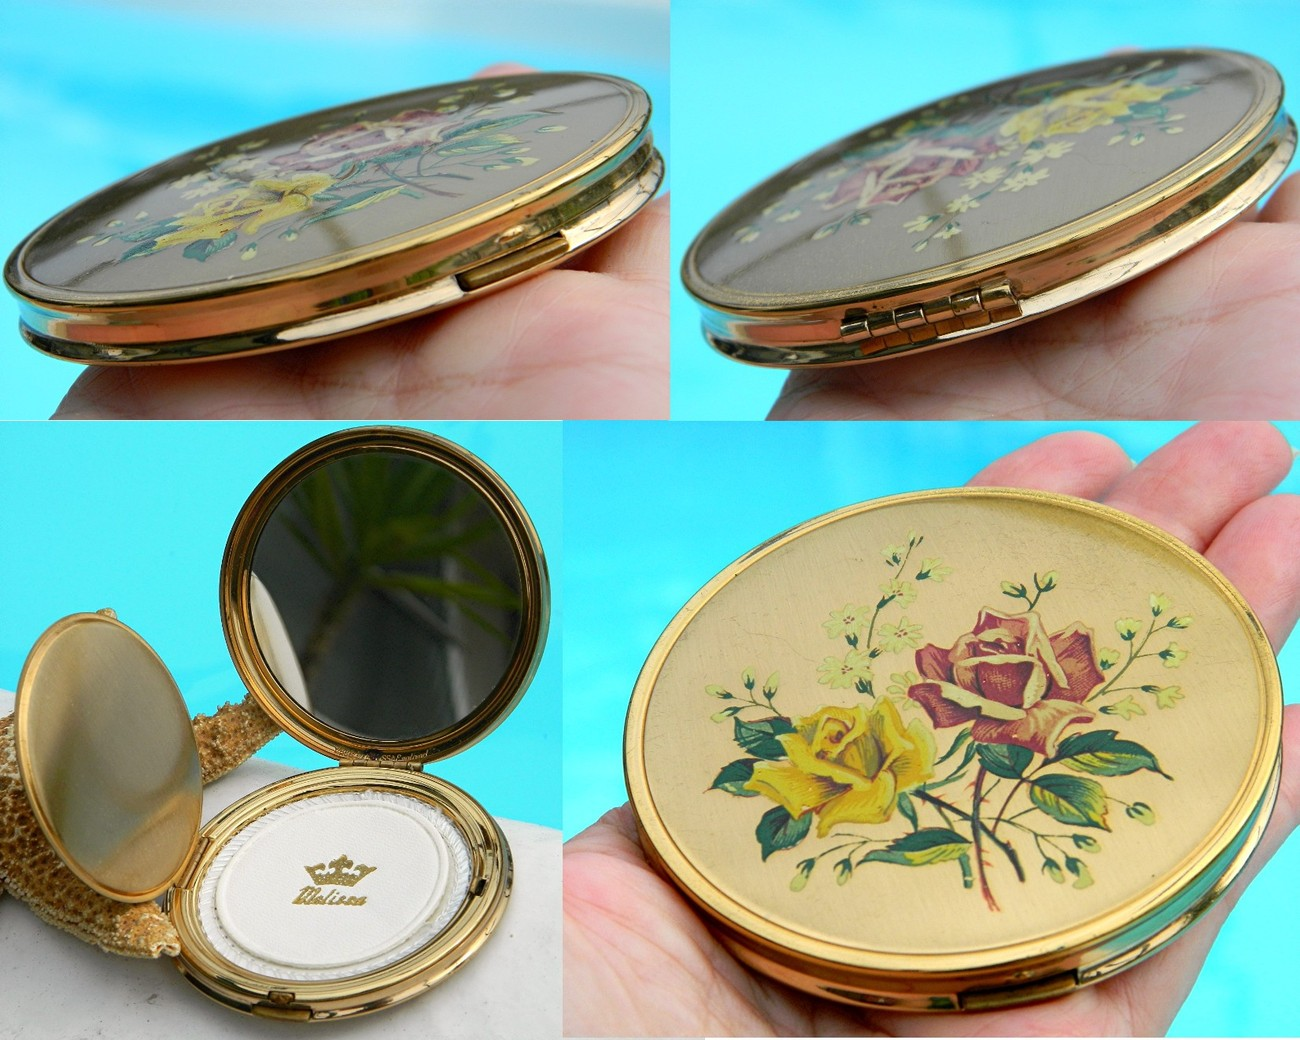 Vintage Powder Mirrored Compact Melissa England Roses 1950s